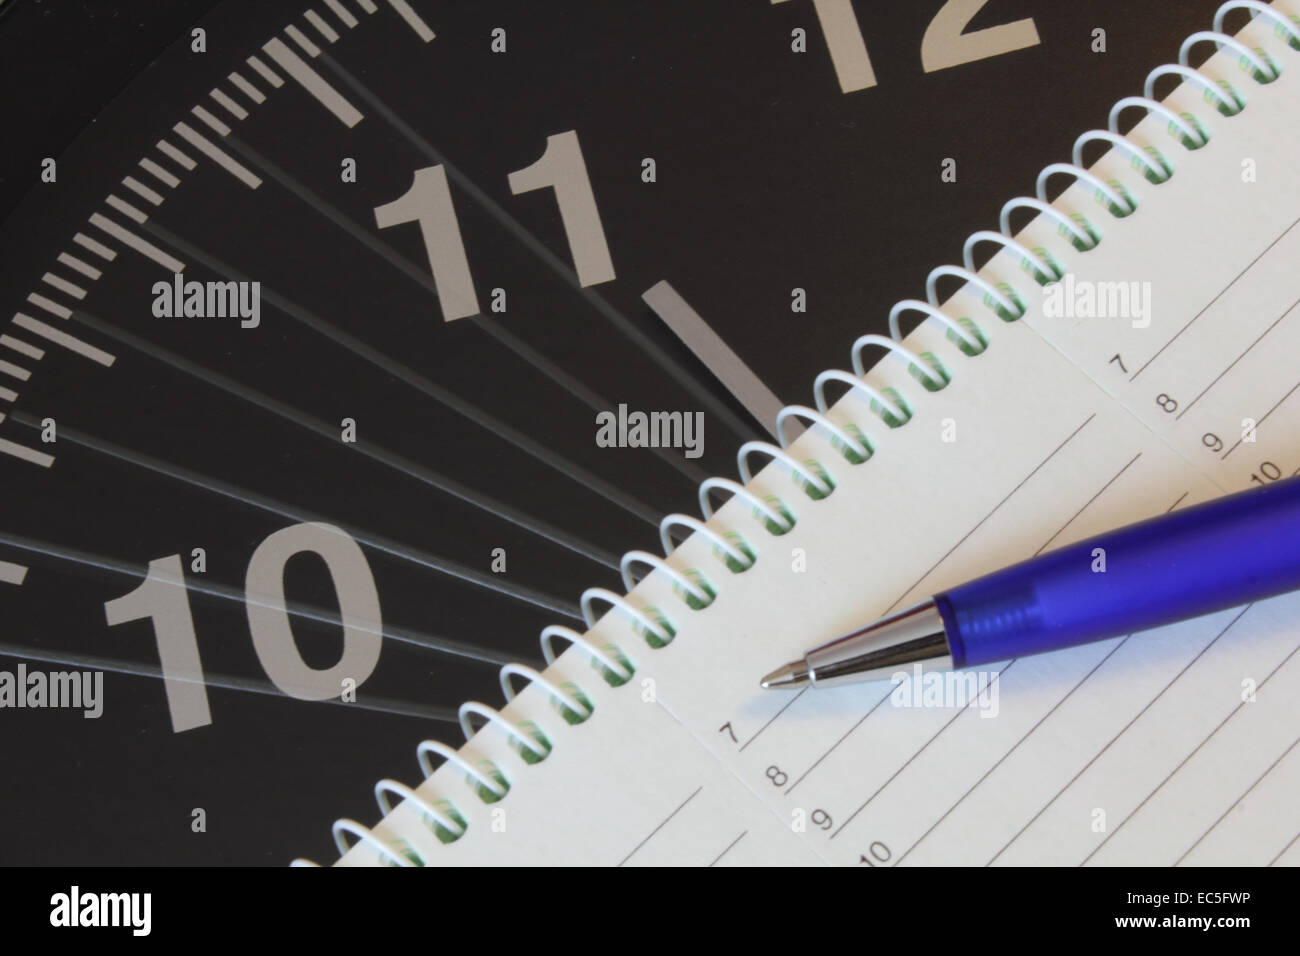 deadlines - Stock Image